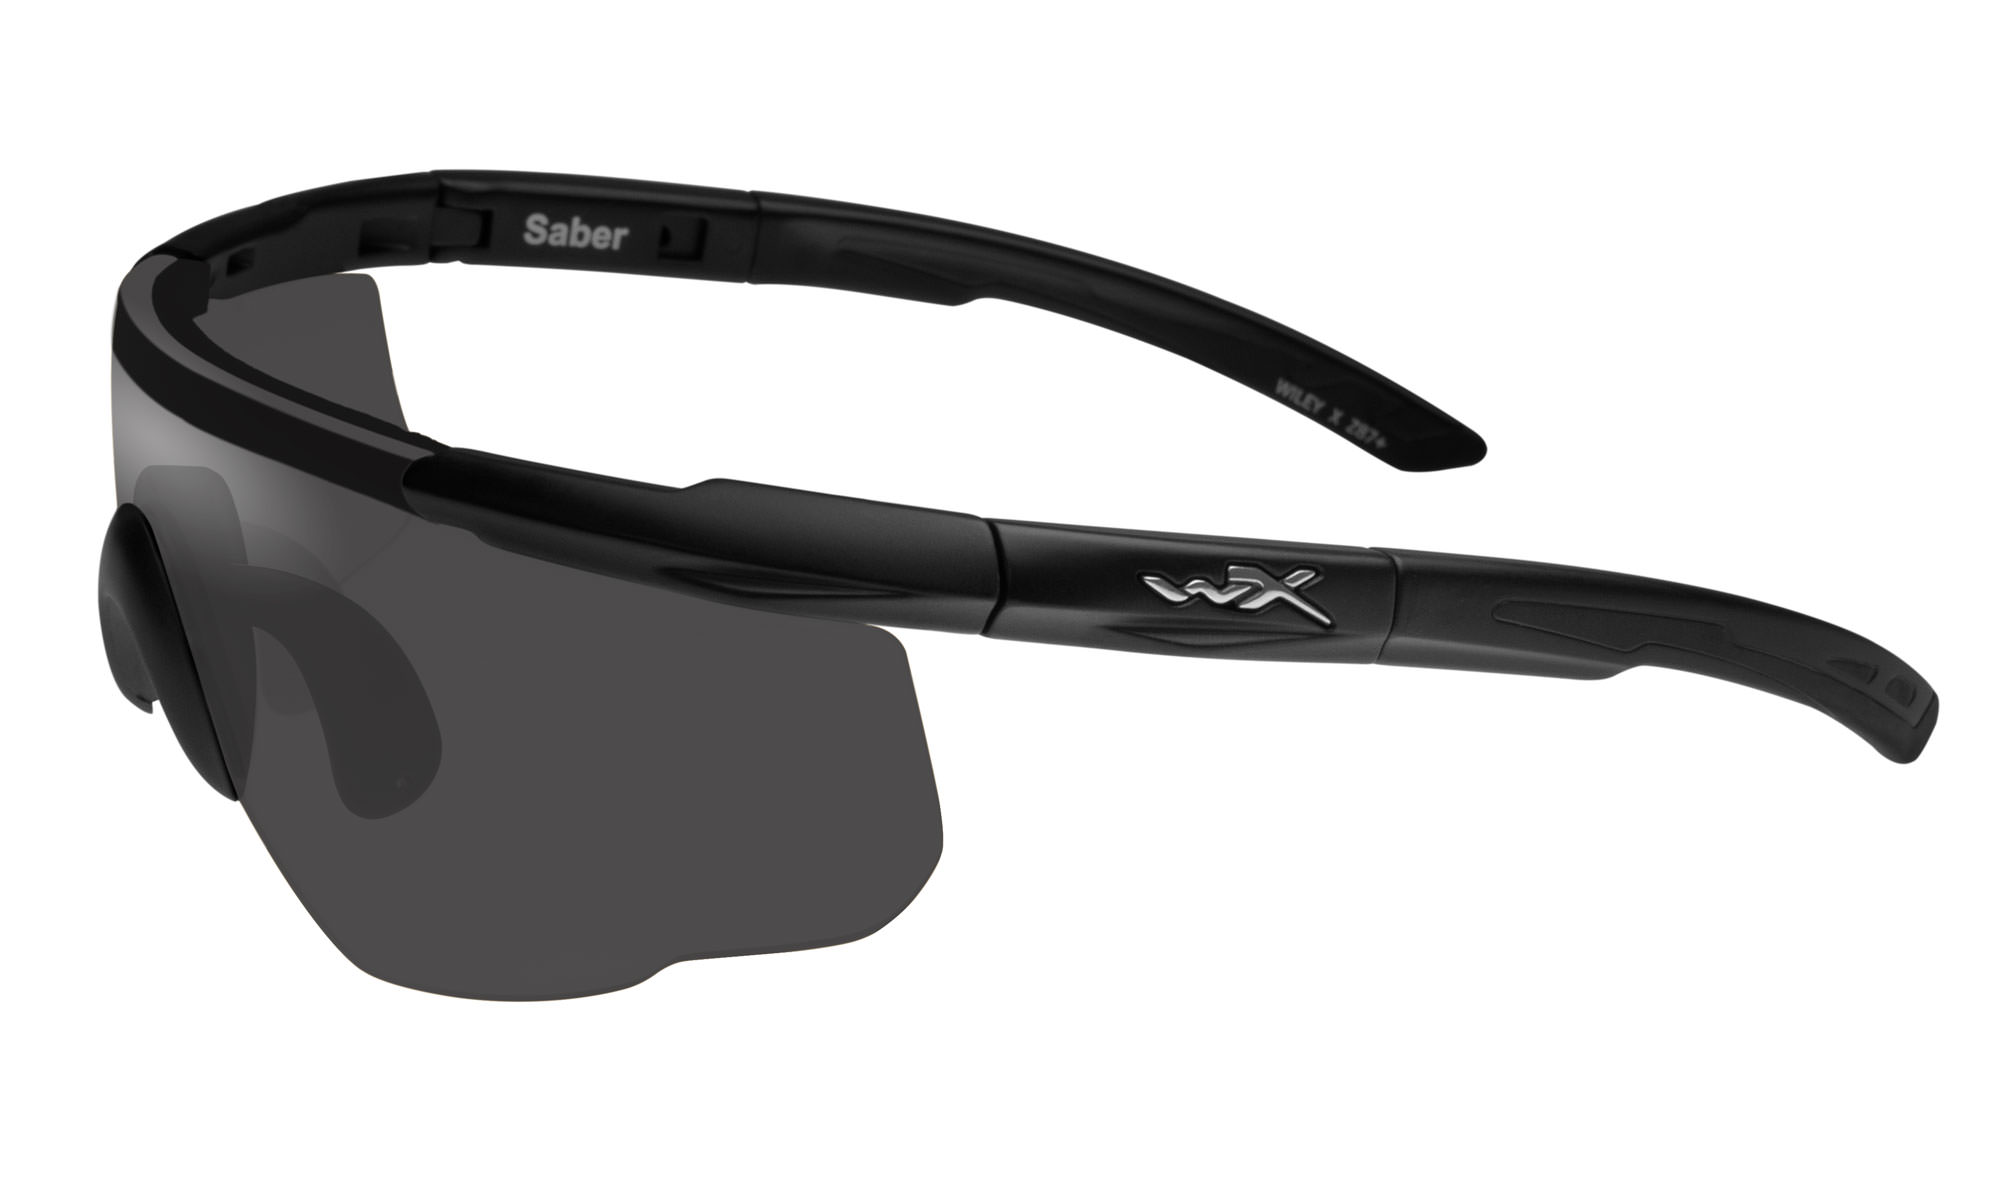 6416c4a0b1aaa Wiley-X Saber Advanced Matte Black with Smoke Grey Lenses